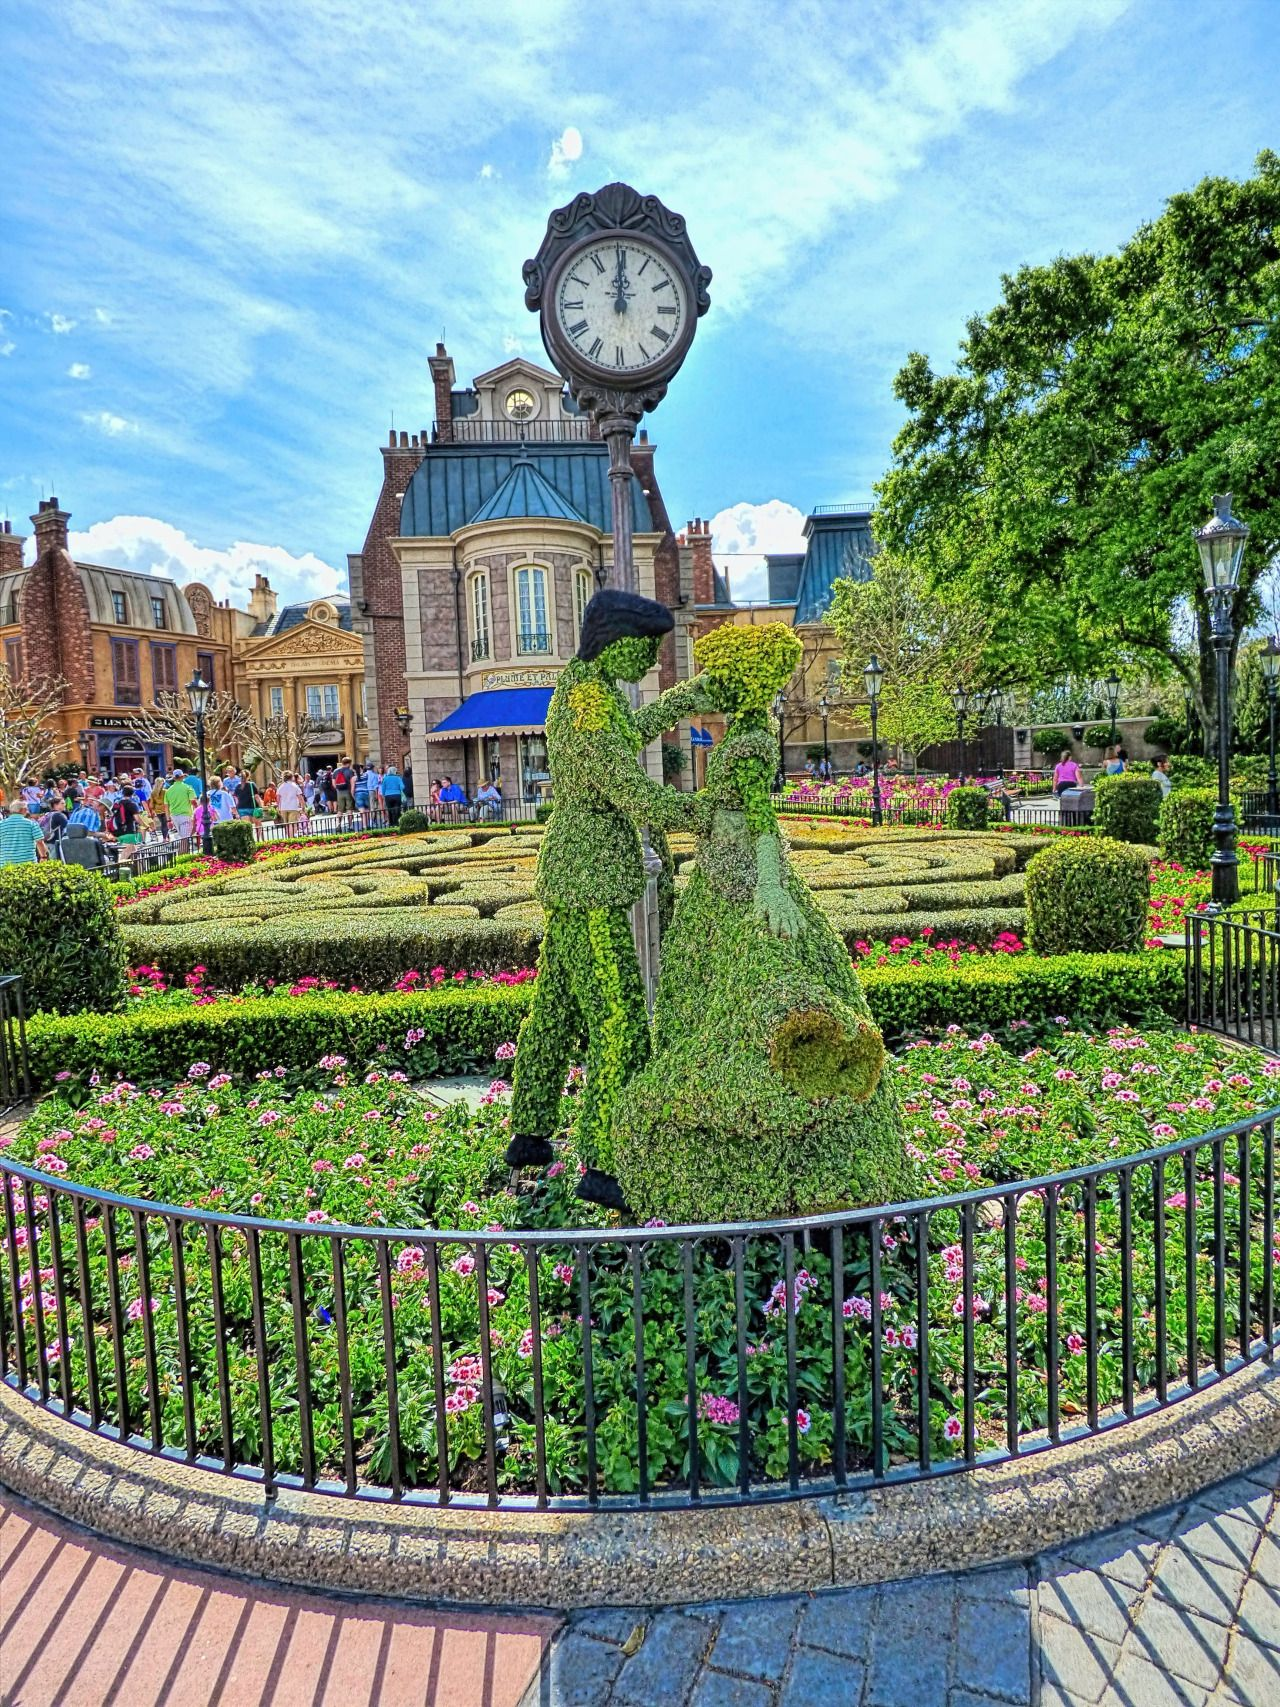 Epcot's France Pavilion during 2015 Epcot International Flower & Garden Festival at the Walt Disney World Resort